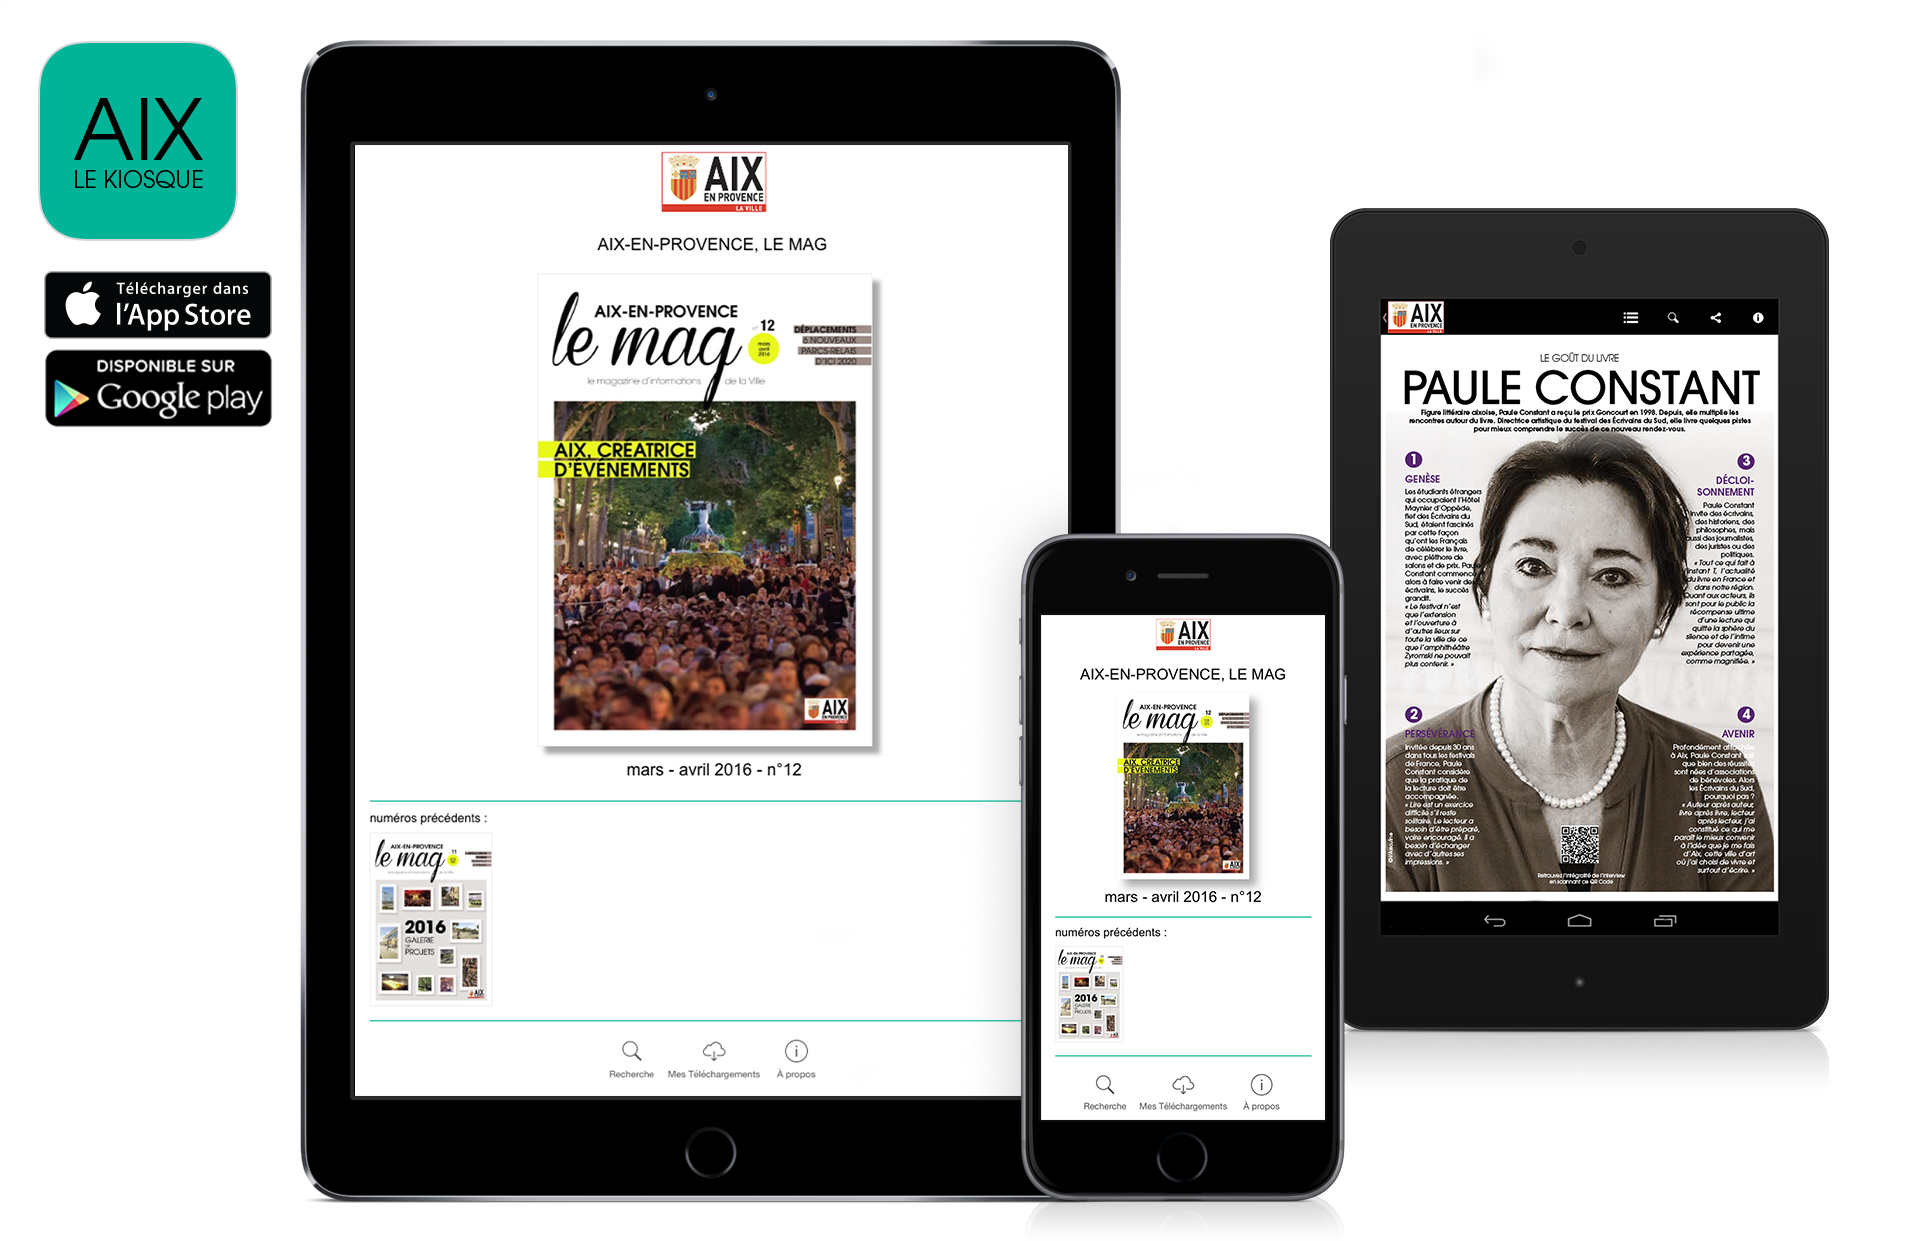 flippad-application-kiosque-magazine-aix-en-provence-ipad-iphone-android